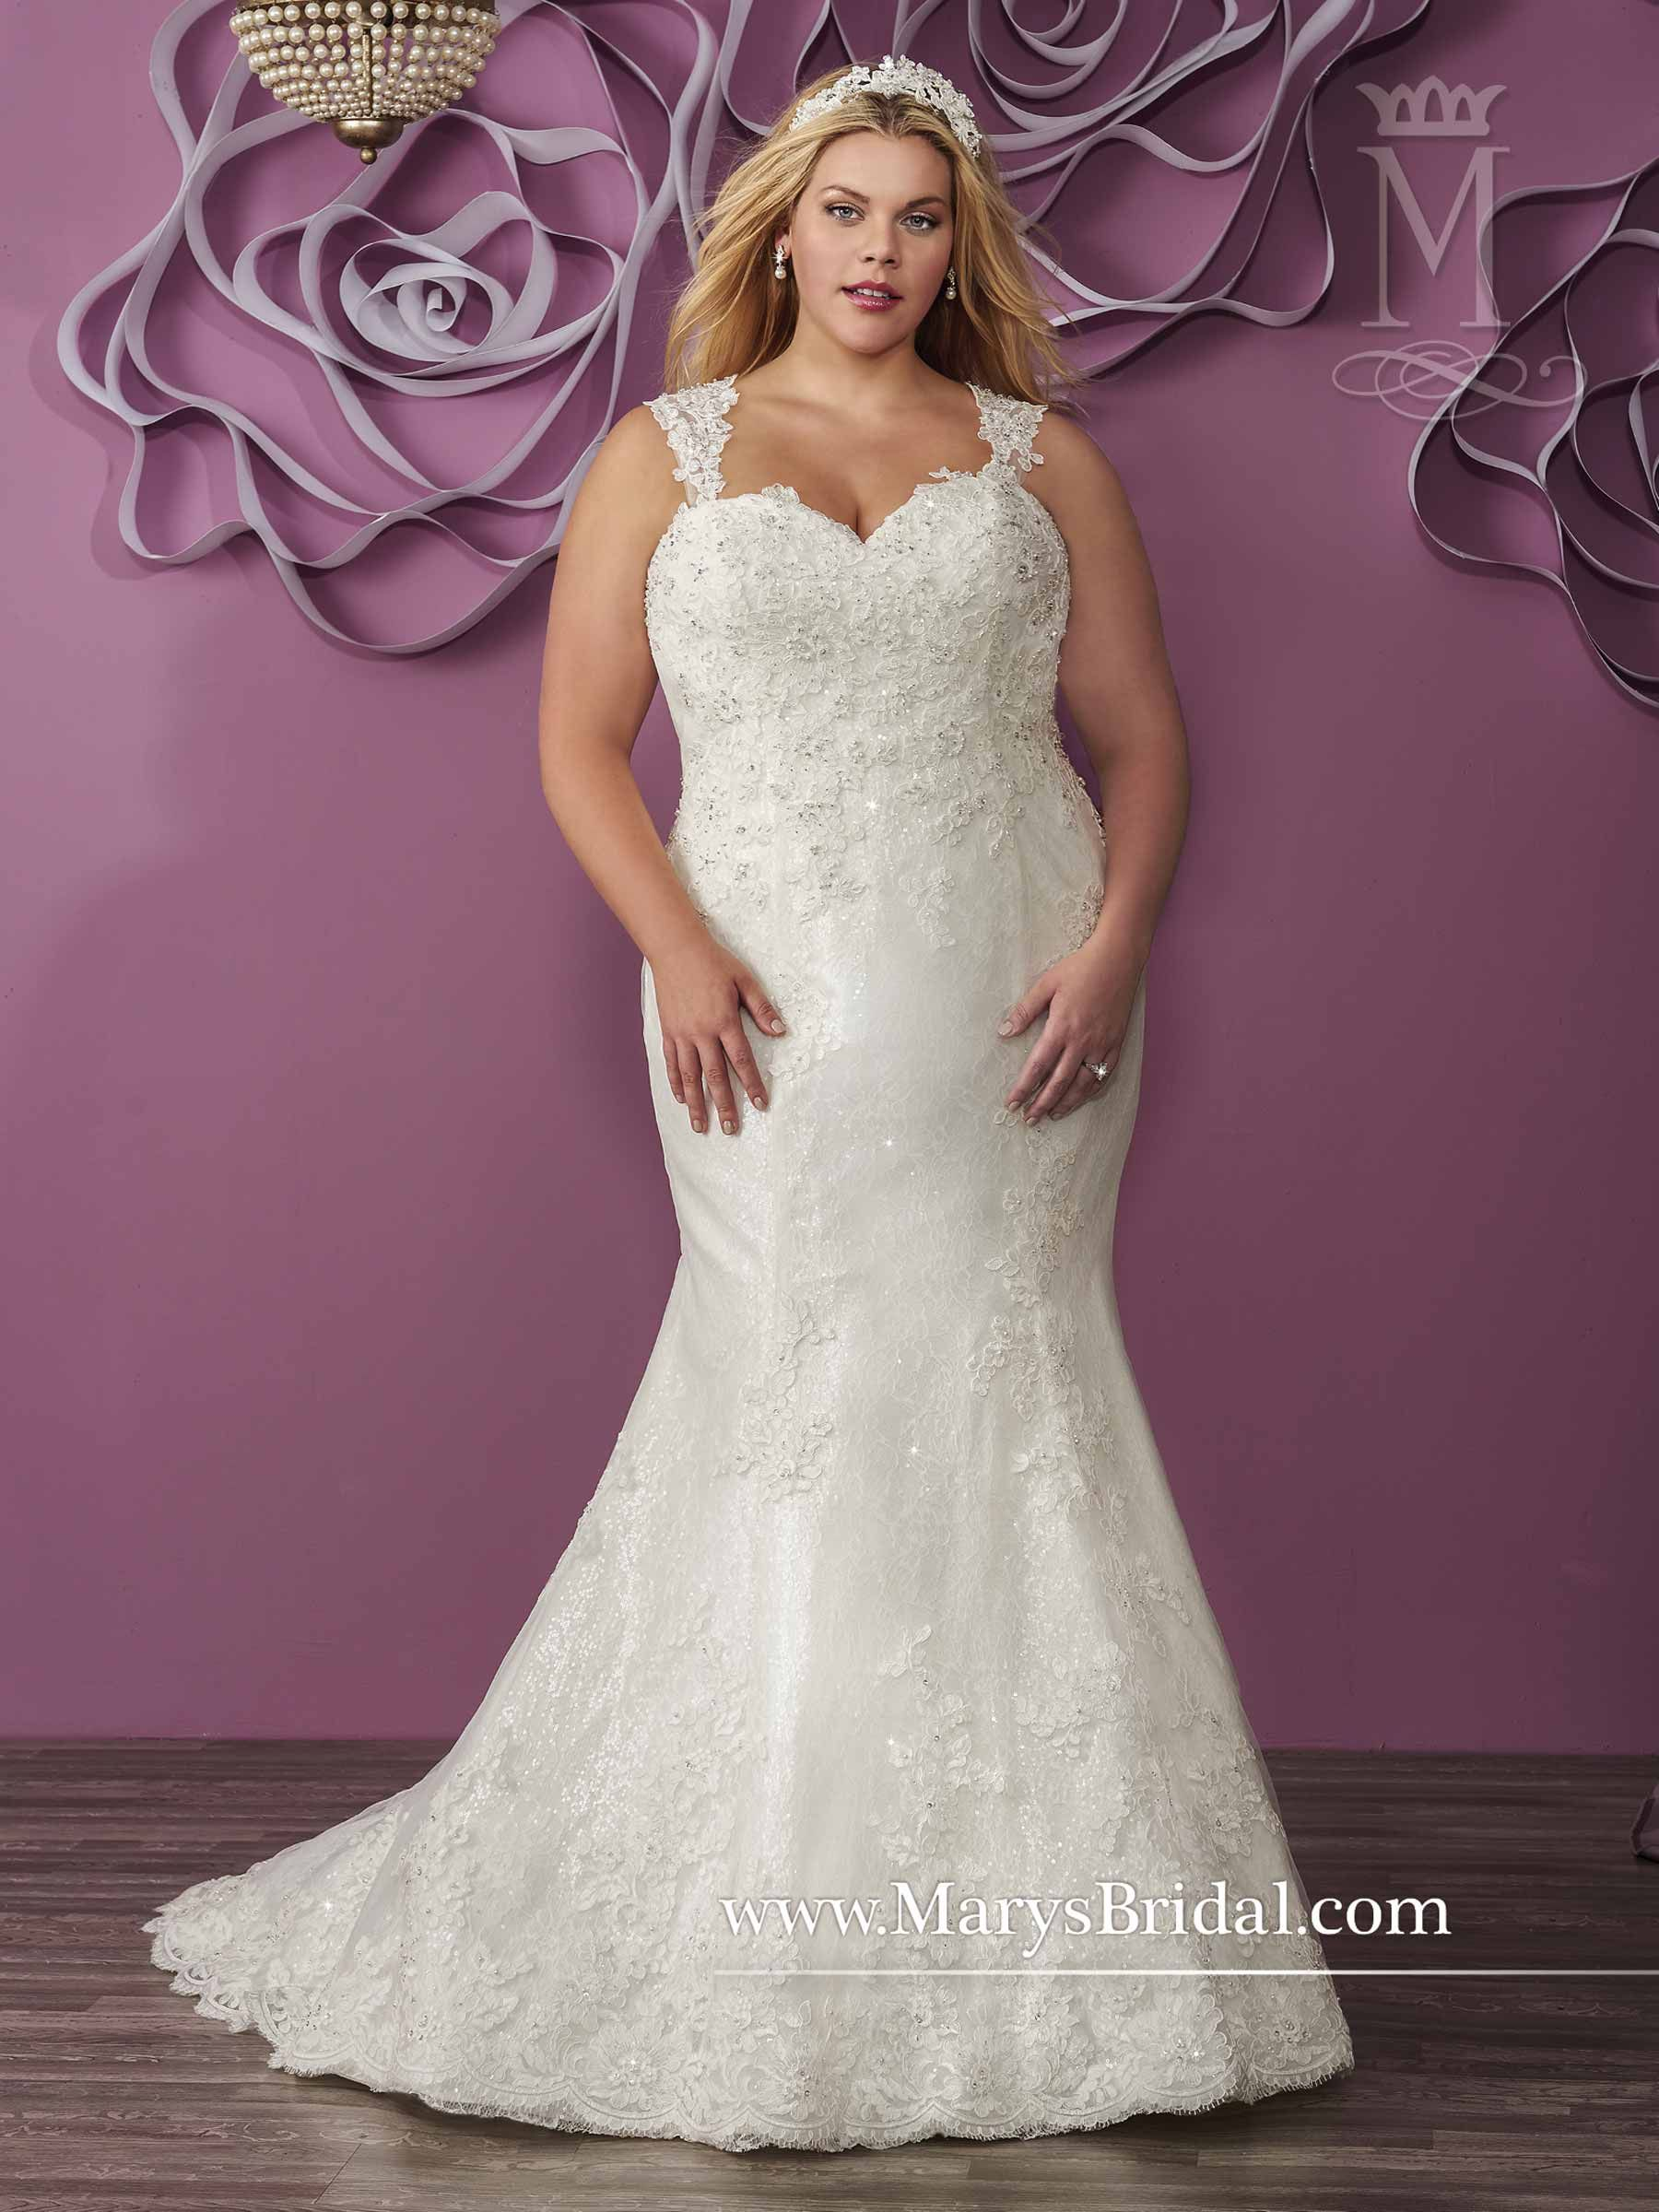 00c9b22852b3 Marys Bridal Plus Size Wedding Dresses - raveitsafe